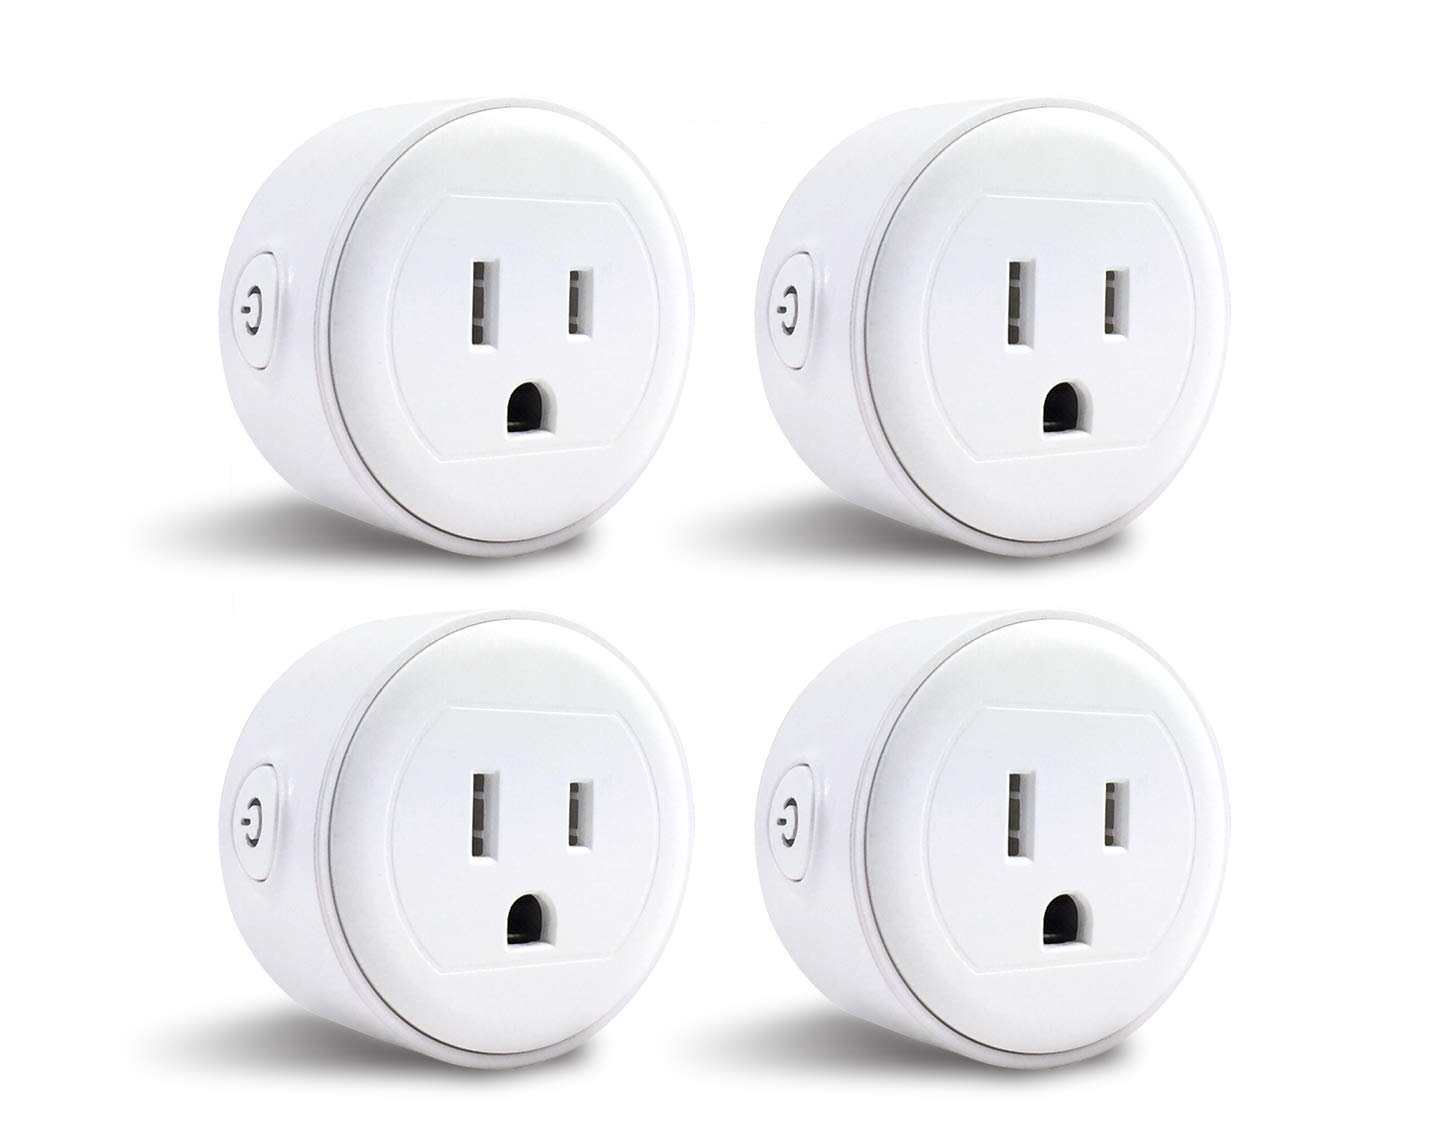 GoldenDot WiFi Mini Plug, Smart Home Power Control Socket, Wireless Control Your Household Appliance from Anywhere, No Hub Required, Compatible with Amazon Alexa and Google Home (4Pack)